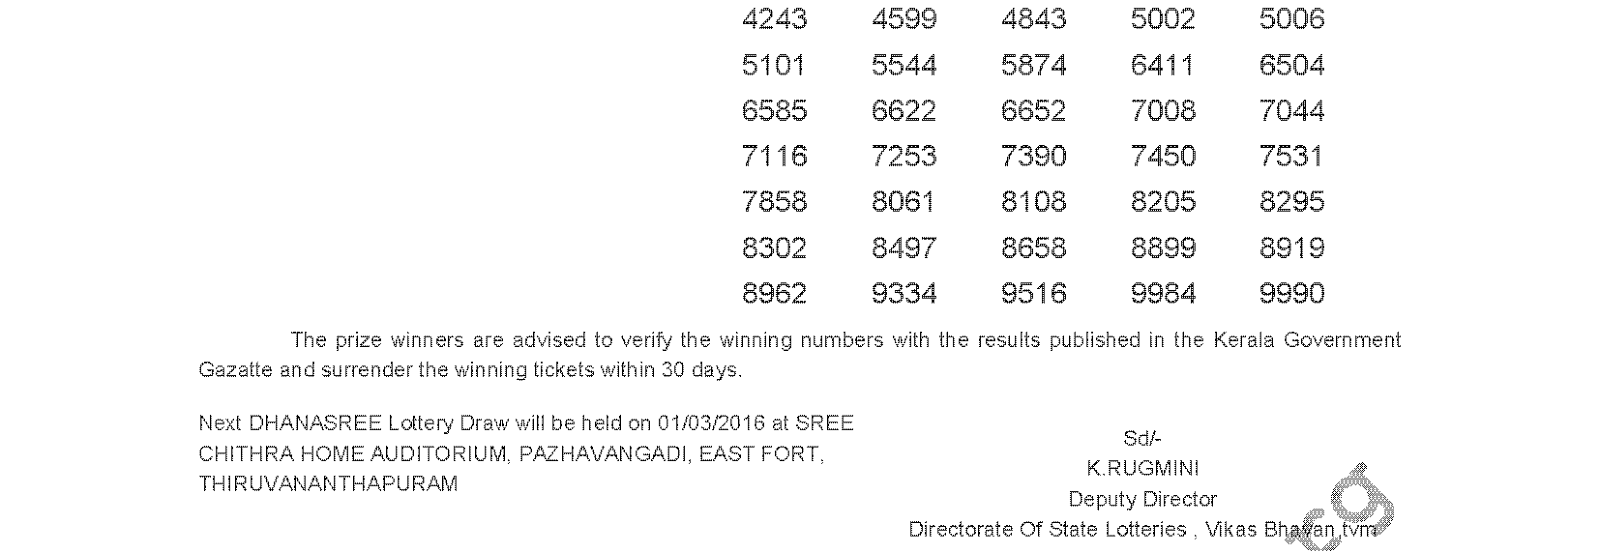 DHANASREE Lottery DS 225 Result 23-02-2016